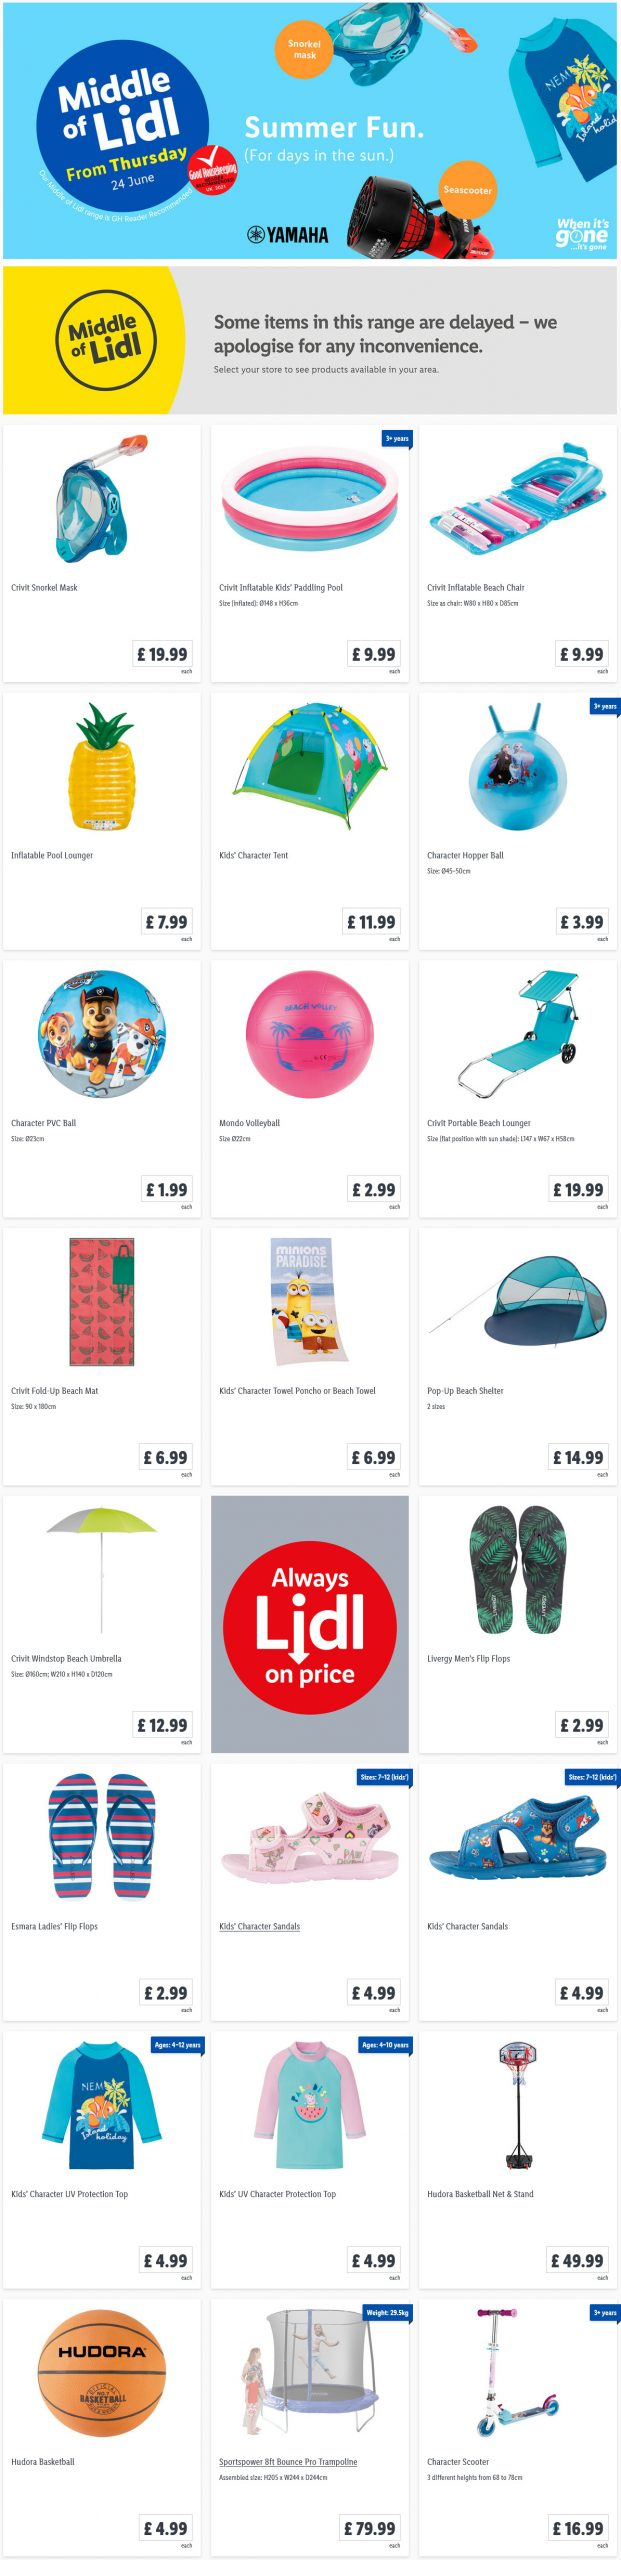 LIDL Offers this Thursday Summer Fun From 24th June 2021